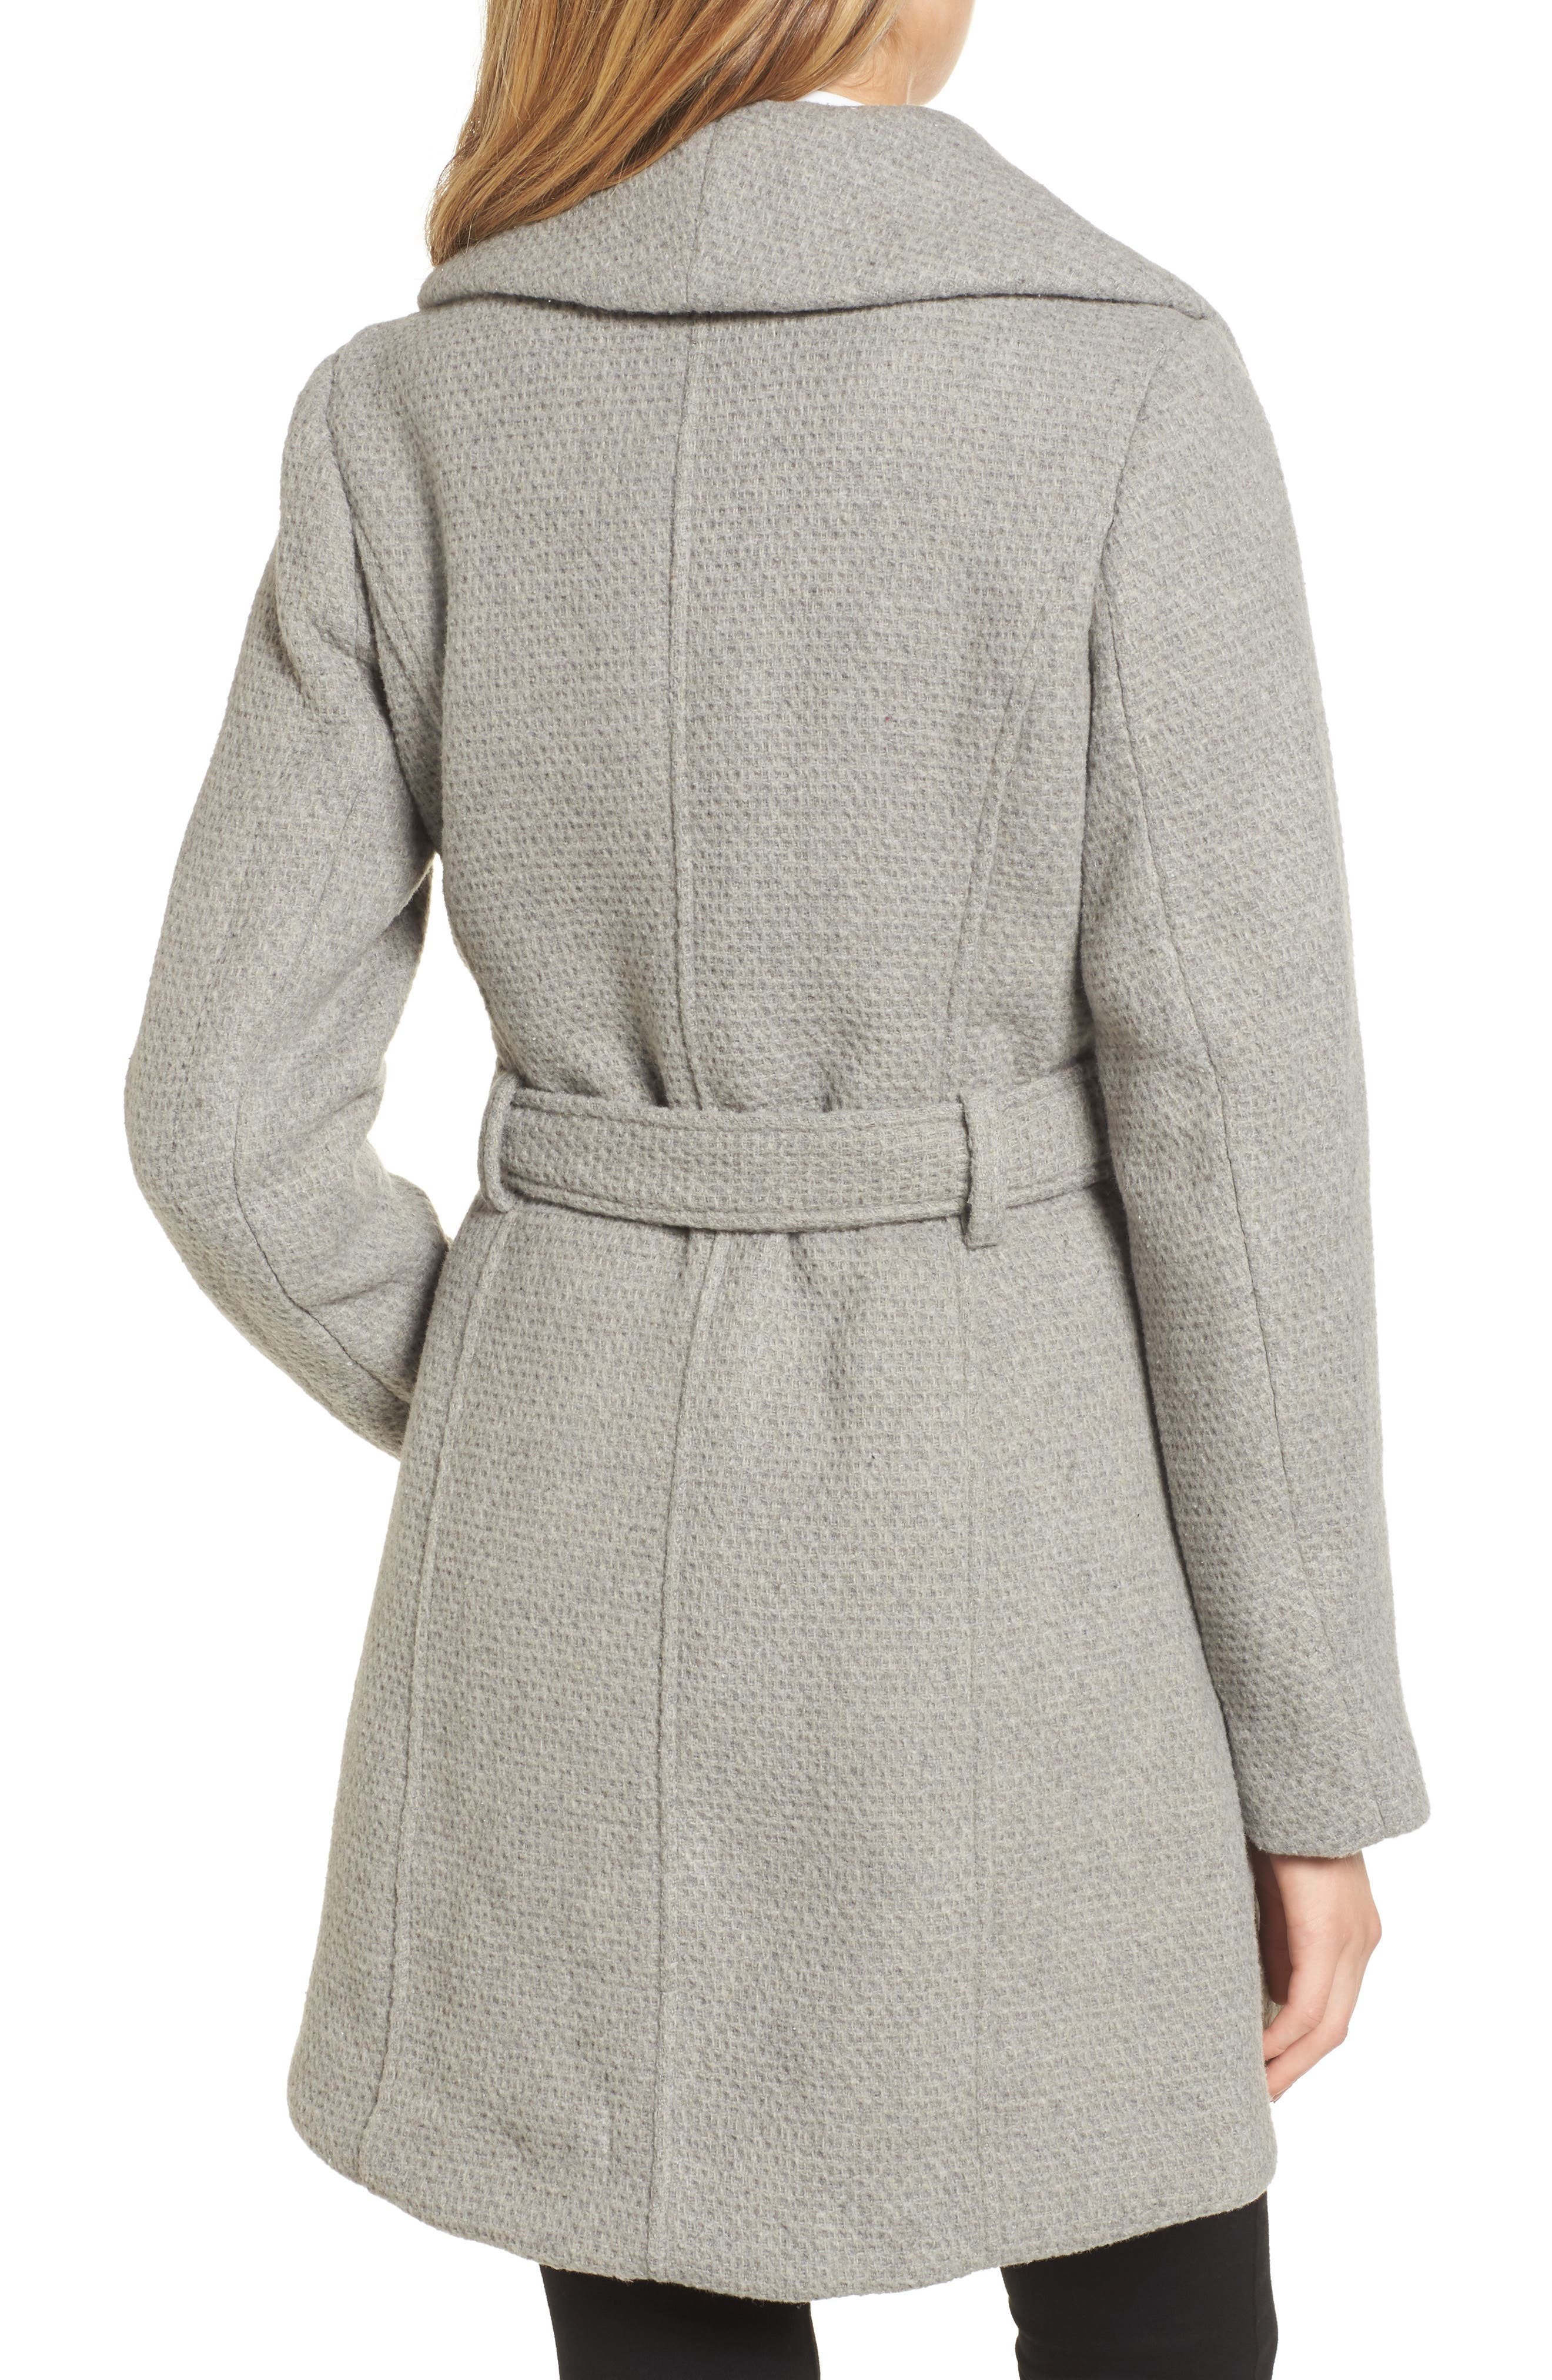 Belted Waffle Woven Coat,                             Alternate thumbnail 2, color,                             038